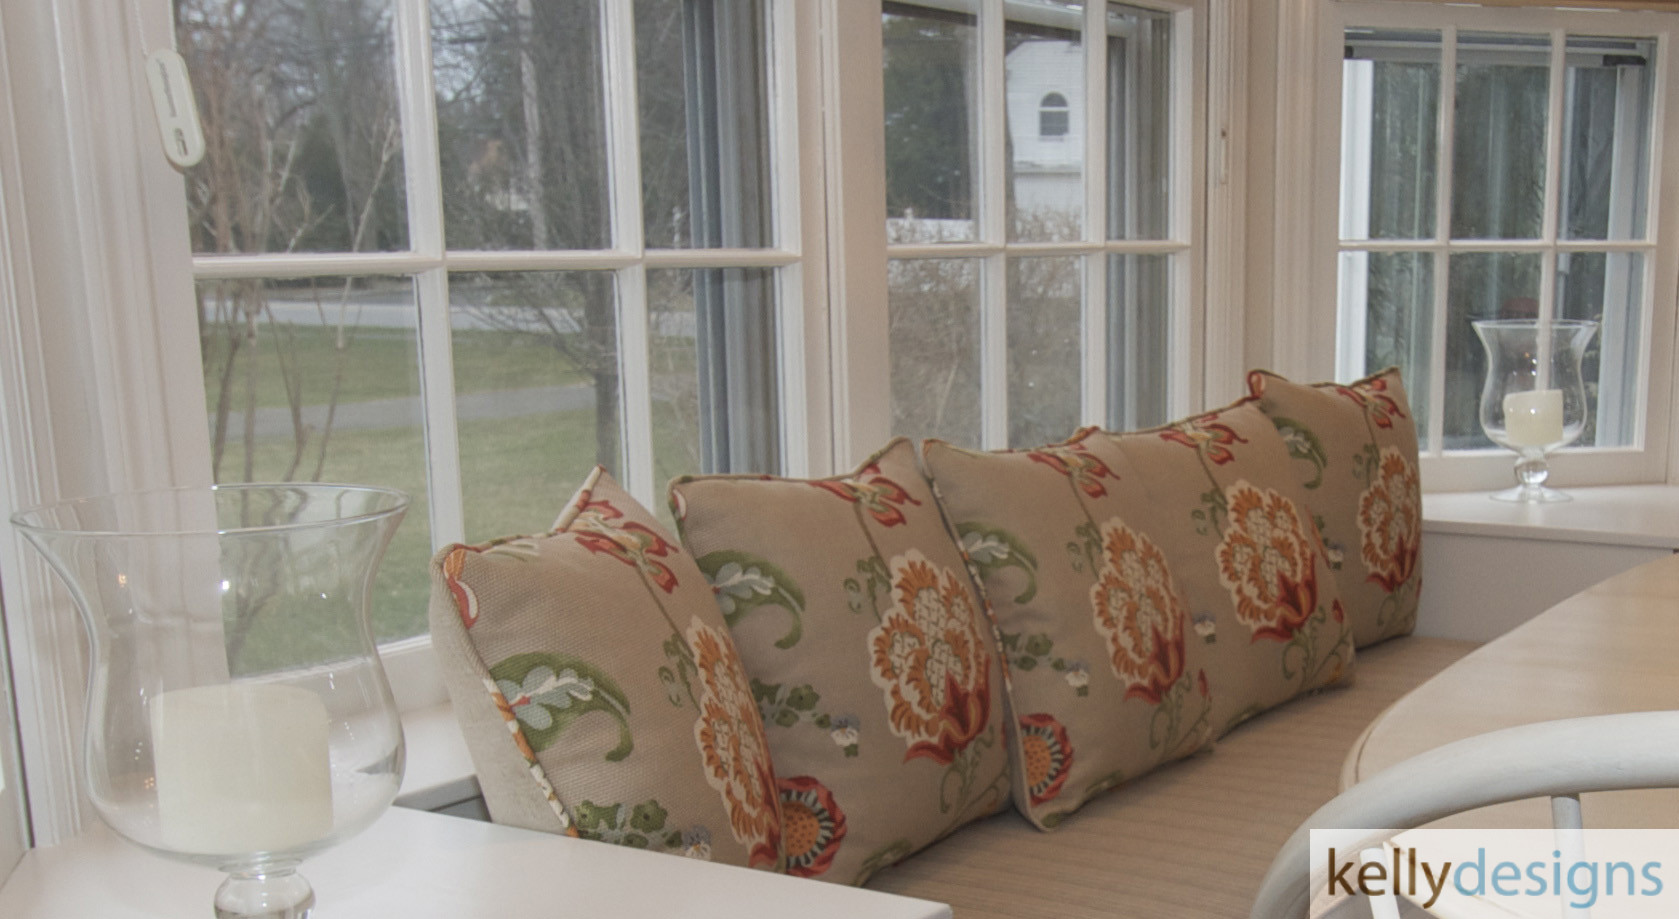 Stunning On Sturges   Window Seat    Interior Design By Kellydesigns